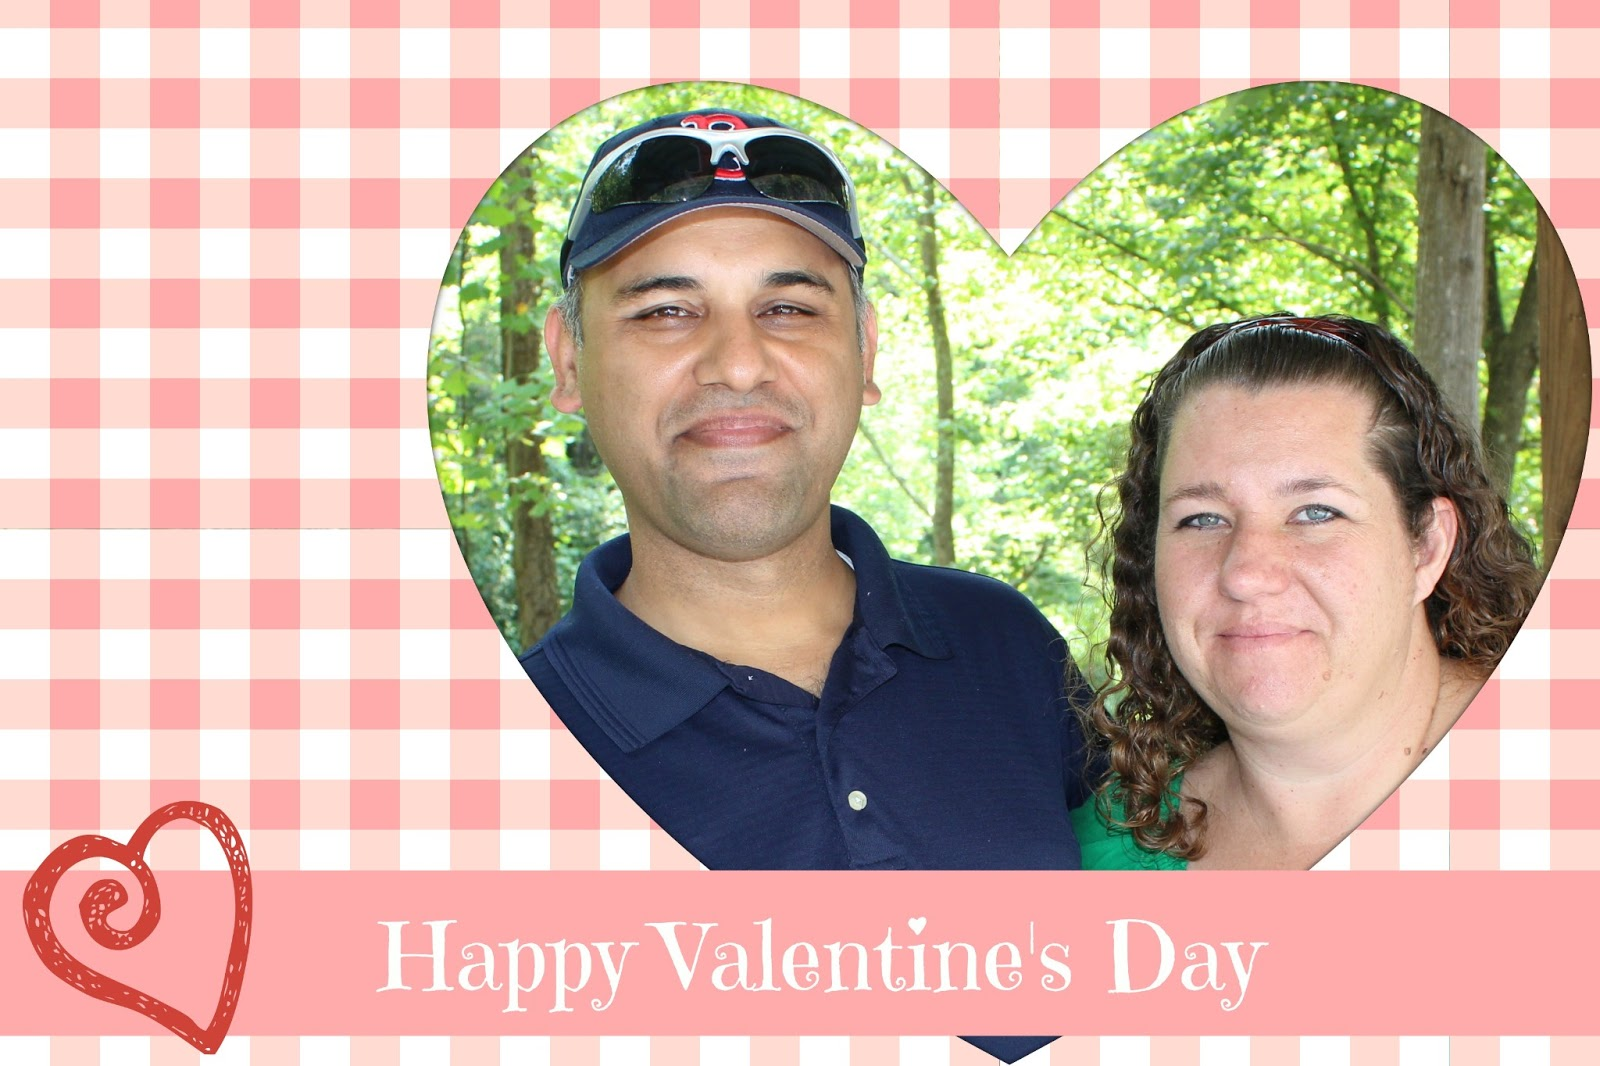 Making a Valentine's Day Card with Picmonkey for your Husband.